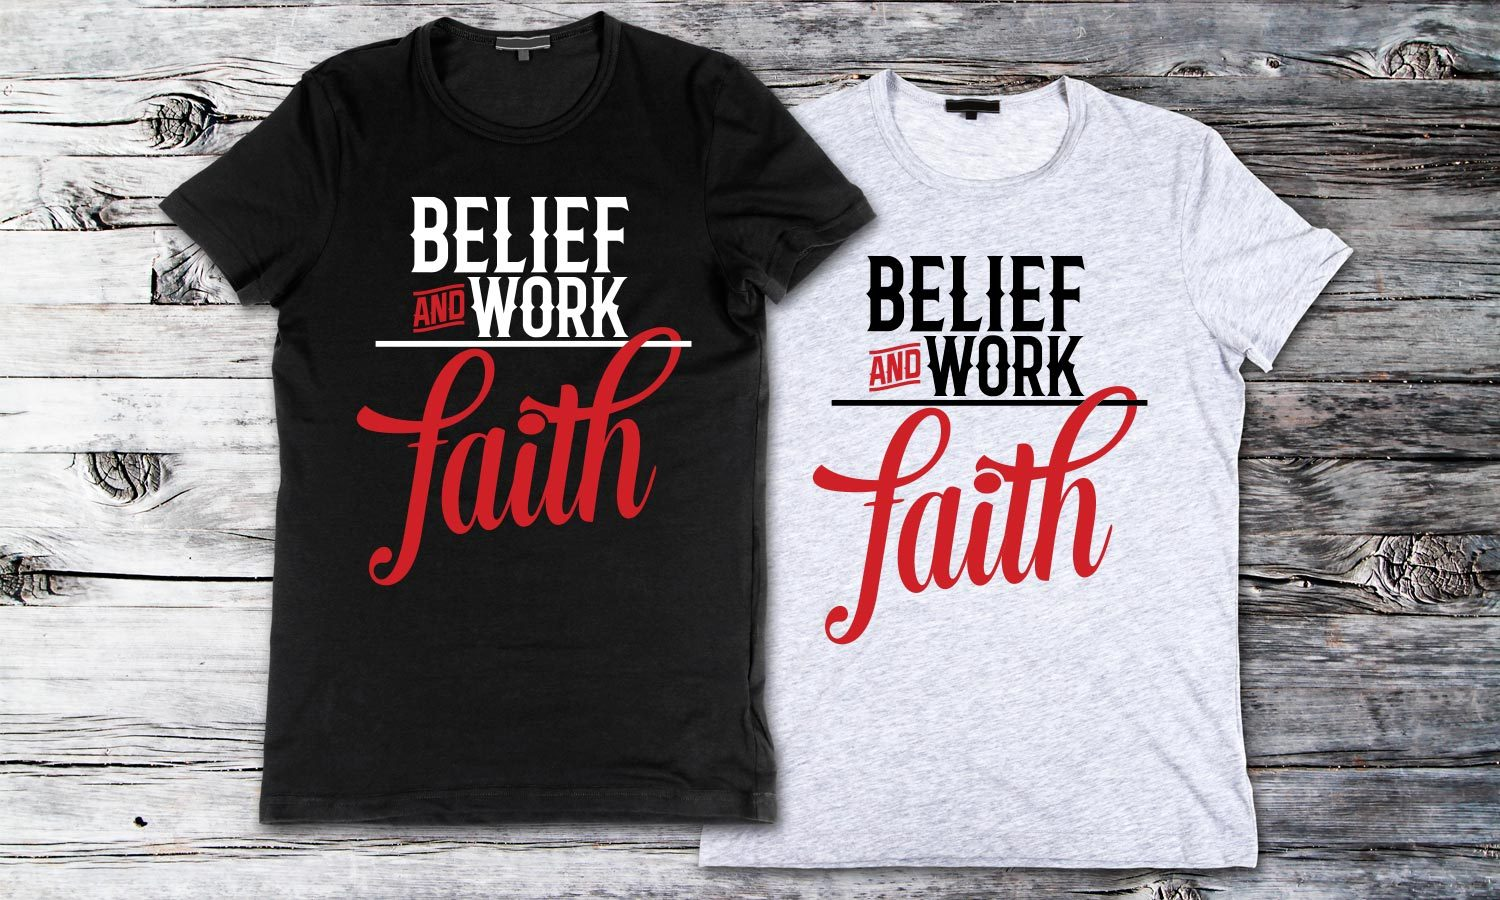 Faith - Printed T-Shirt for Men, Women and Kids - TS156